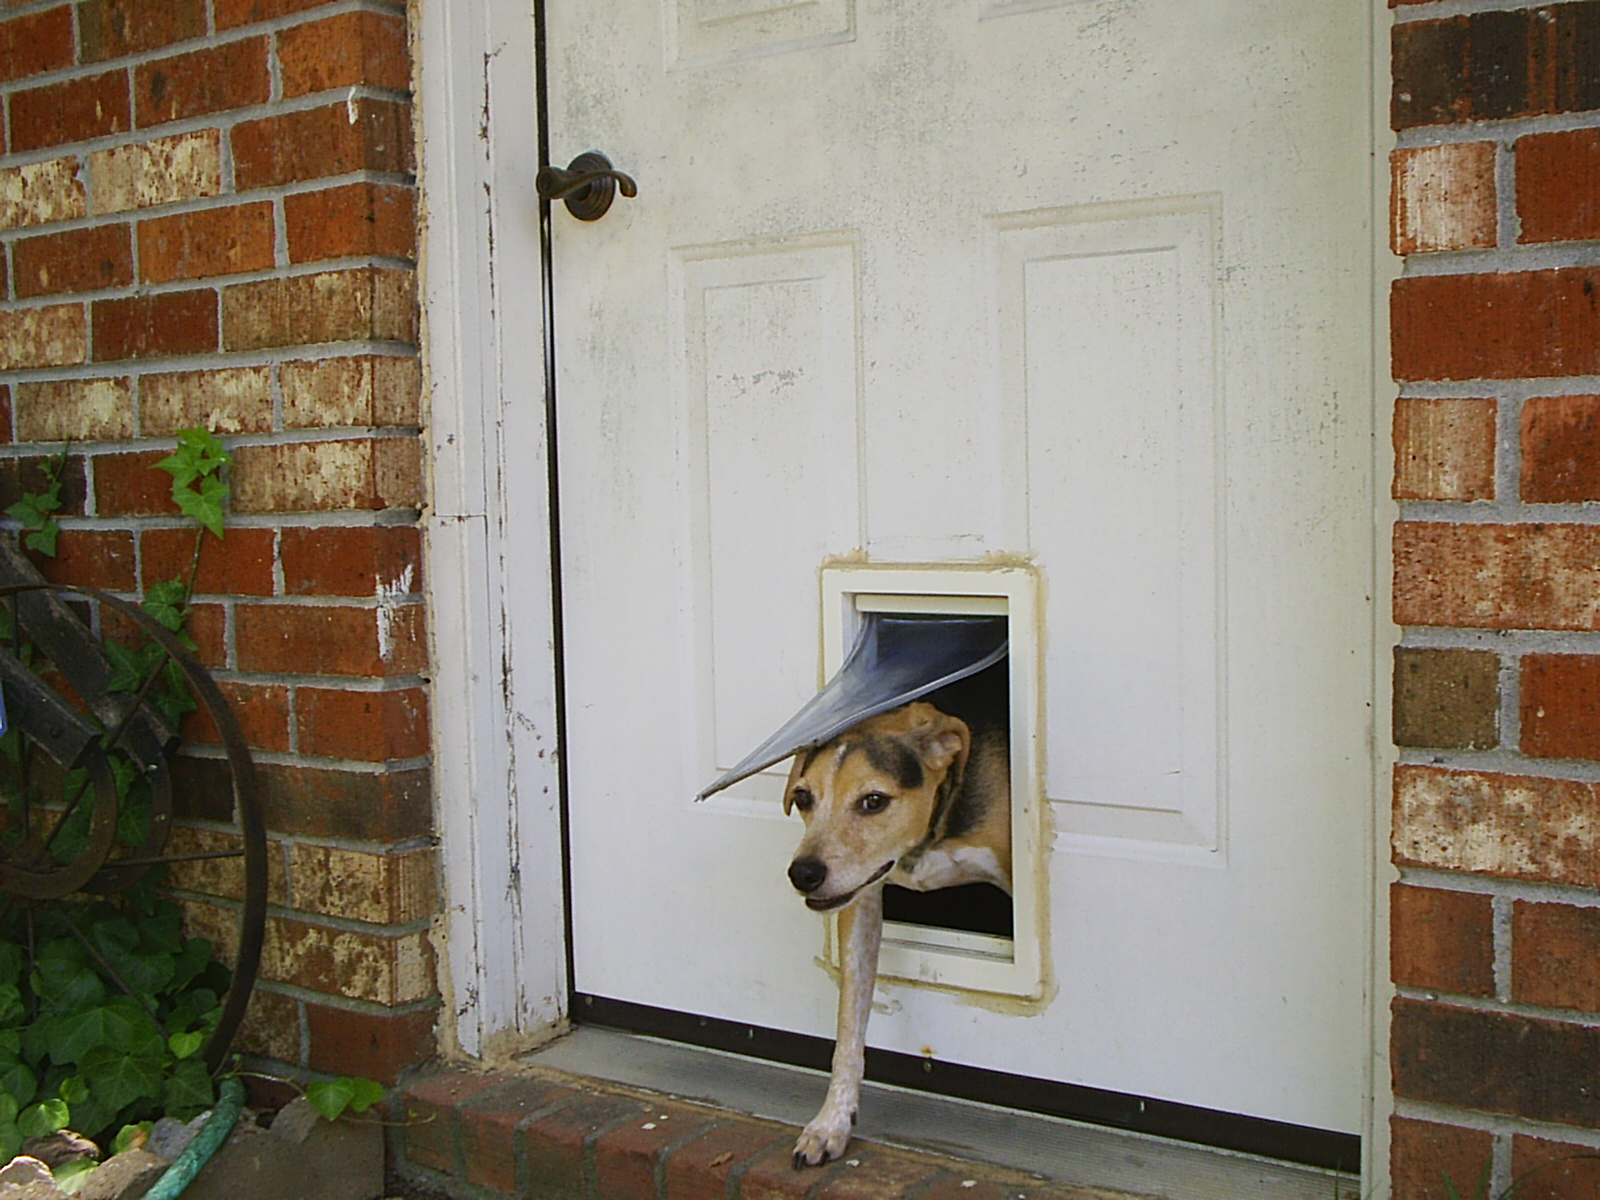 Pet door - Wikipedia